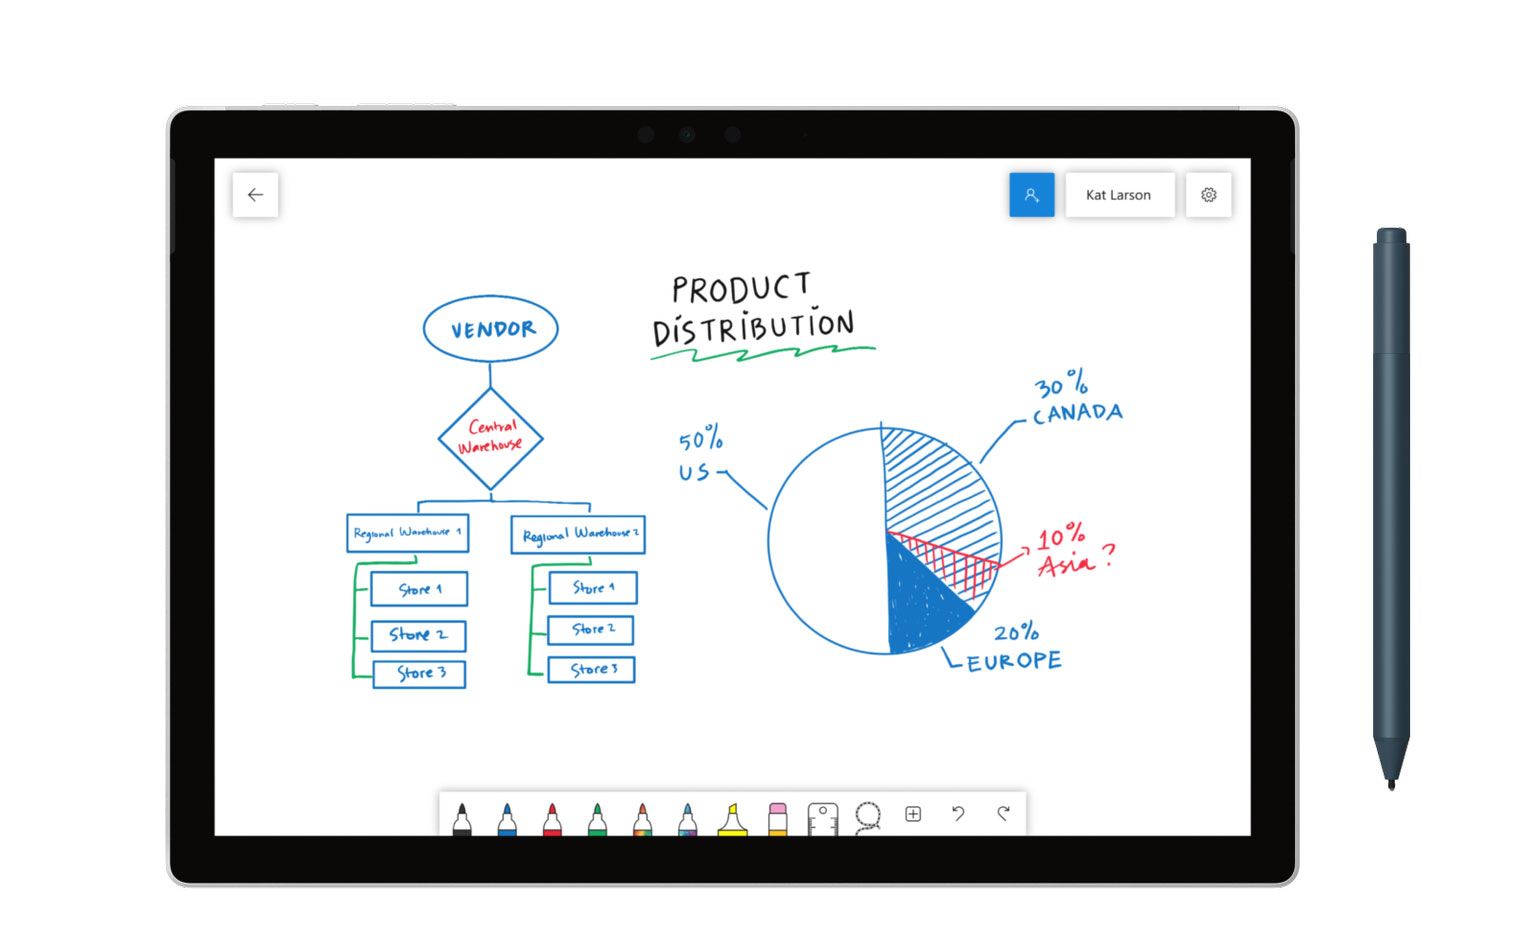 Microsoft's new Whiteboard app